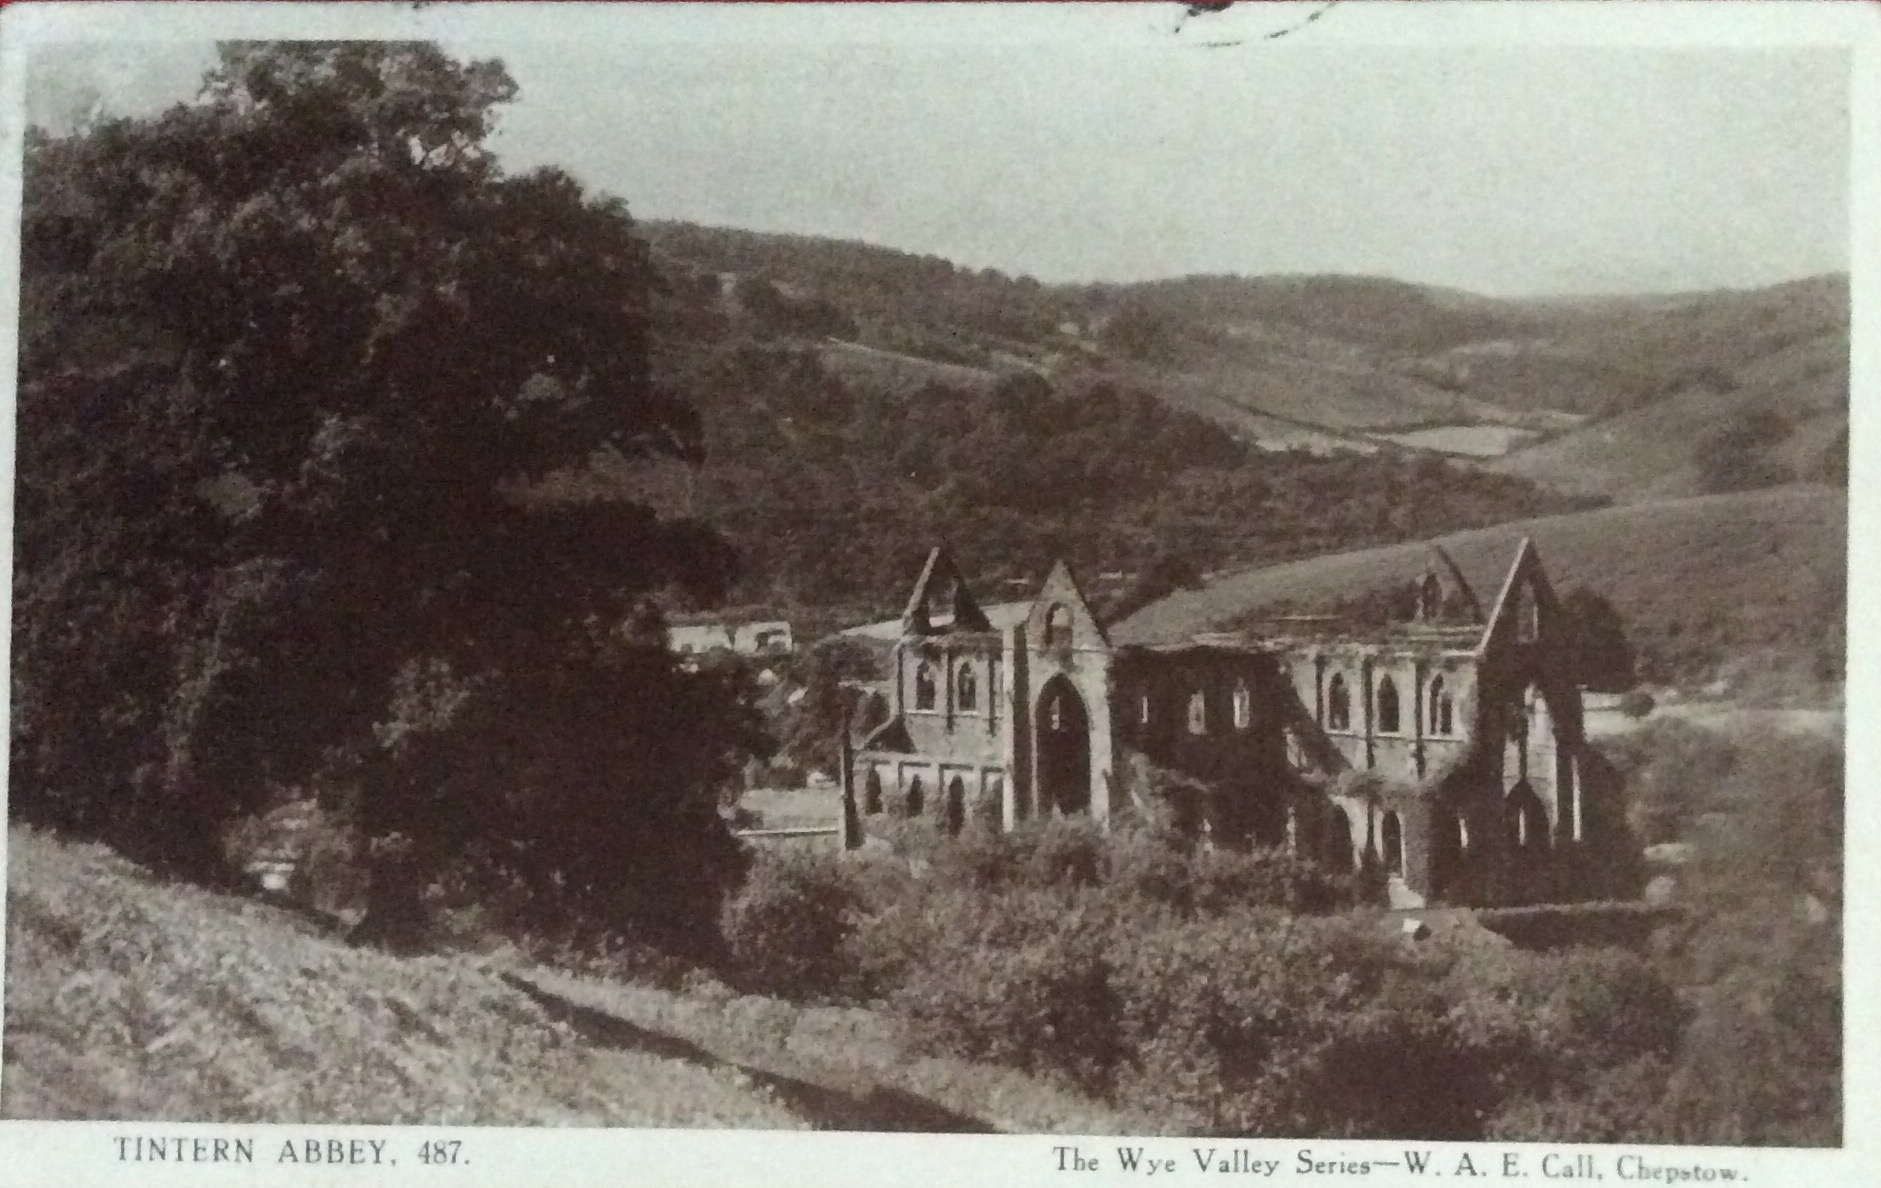 1913 August 25 Motored To Tintern Abbey